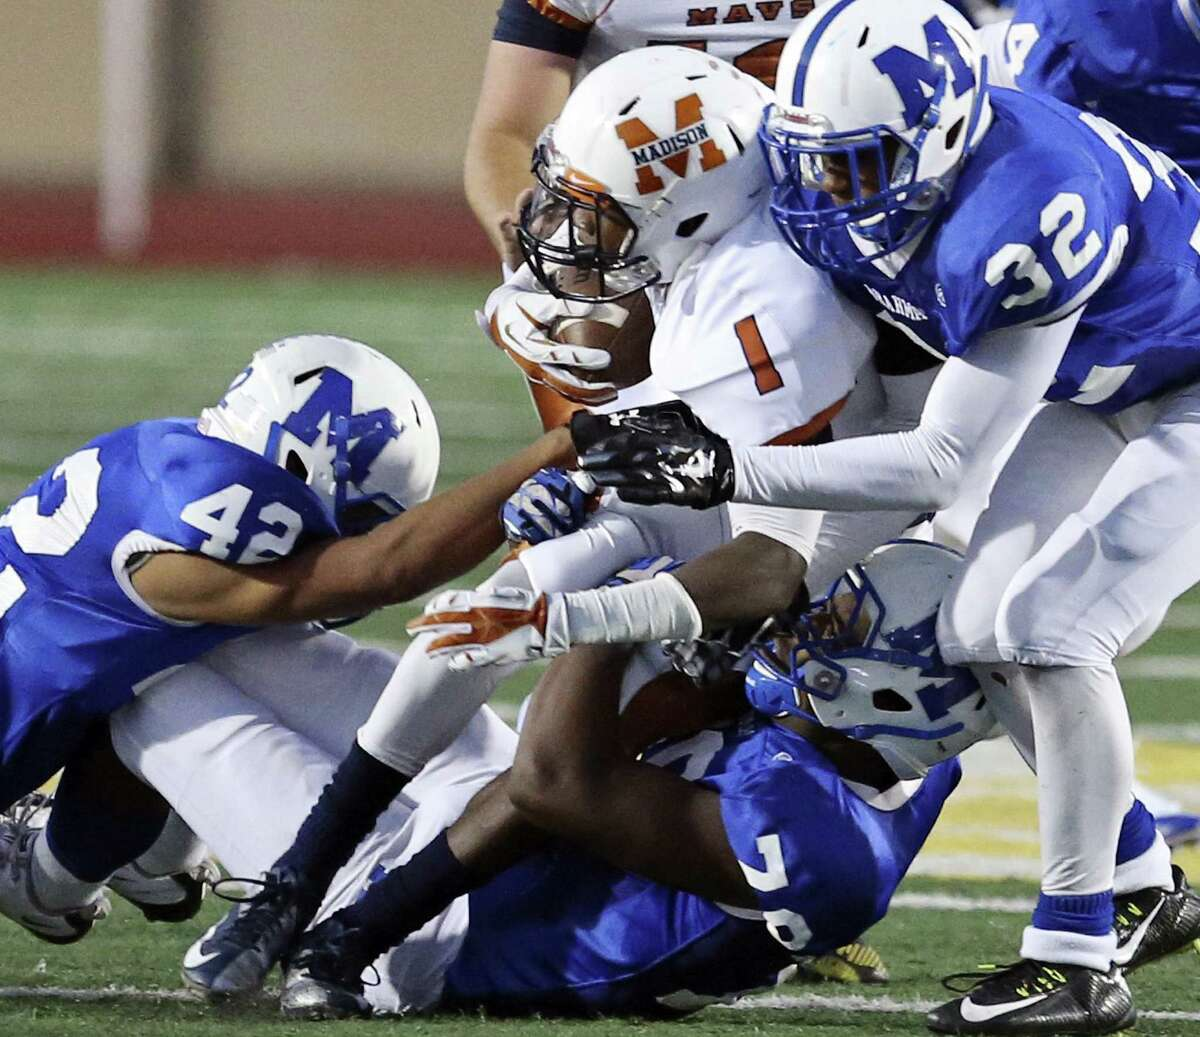 Madison's Alex Ardoin is gang tackled by MacArthur's Sergio Herrera (from left), Xavier Bryant and Deandre Frowner during first half action Sept. 27at Comalander Stadium. MacArthur beat Madison for the first time since 2010, 43-27.